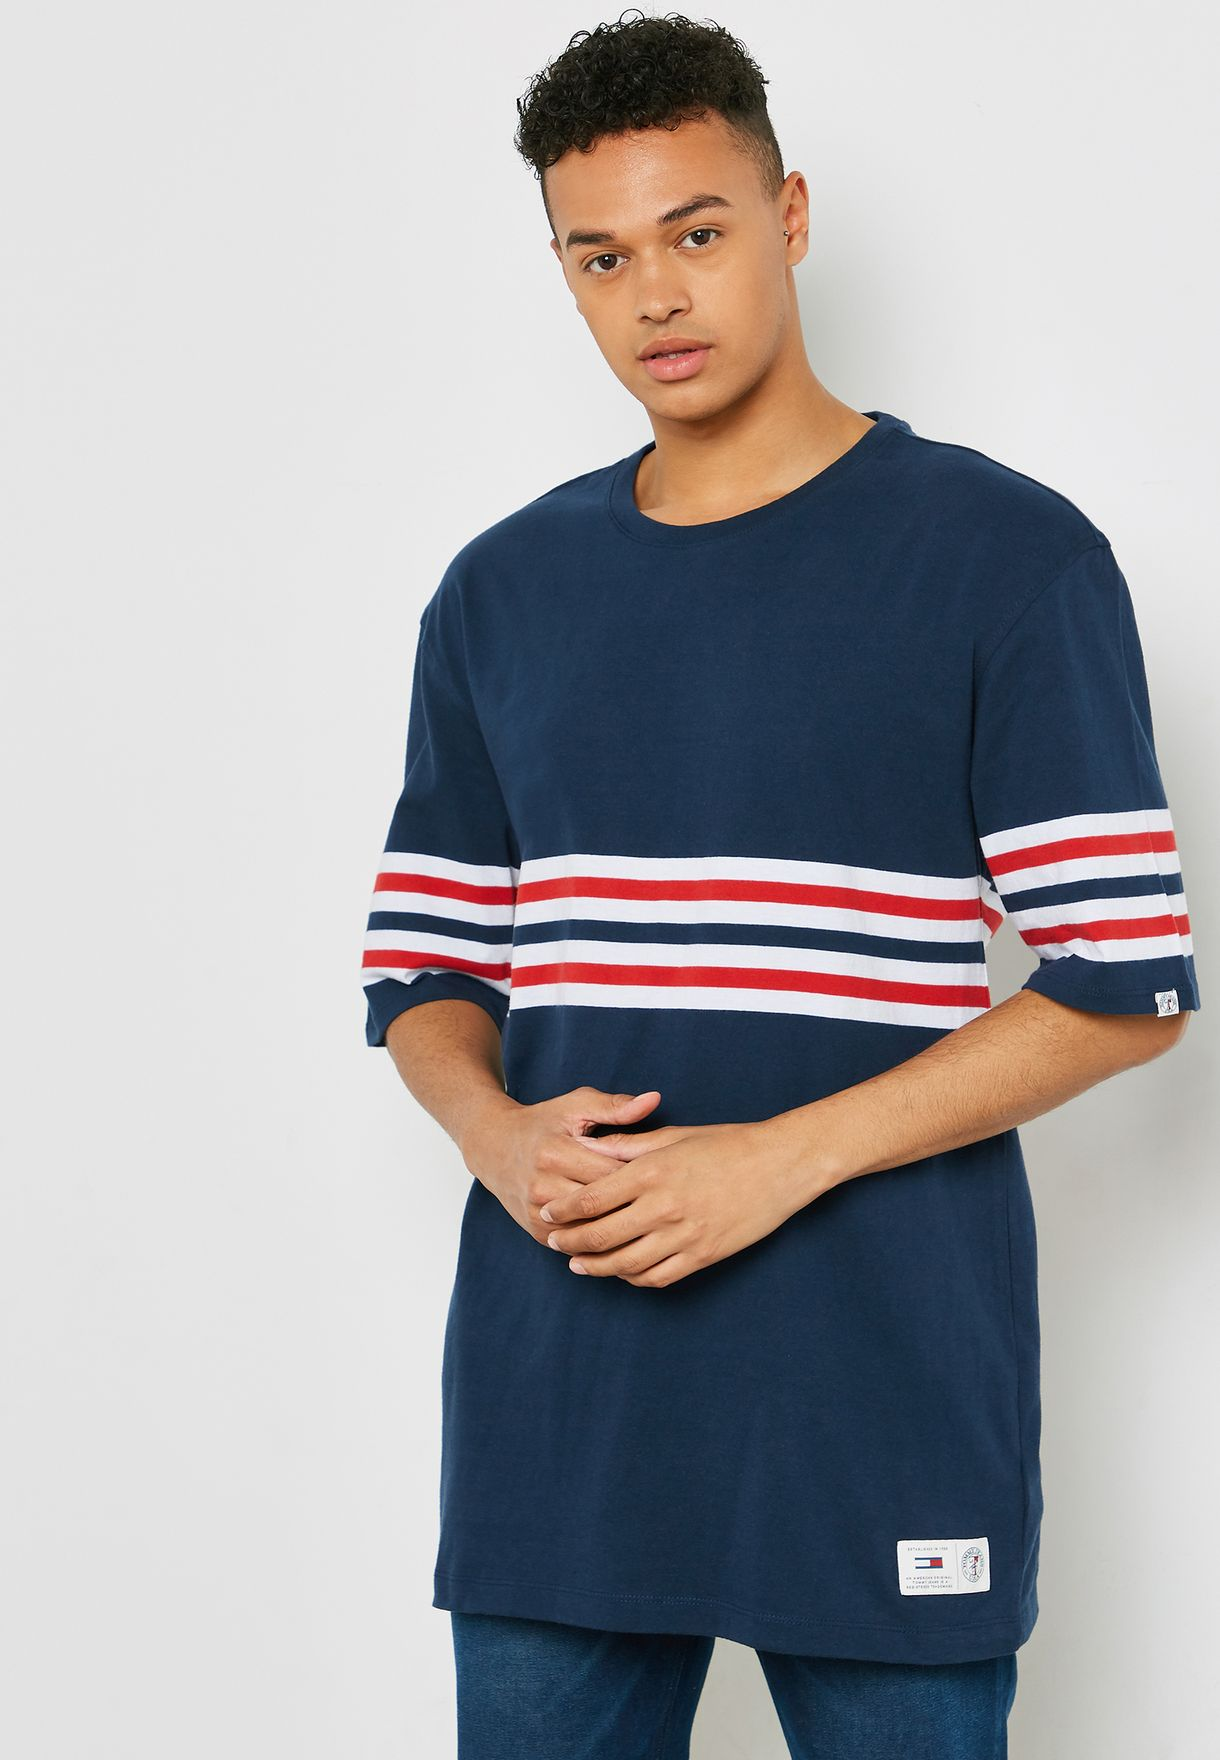 91a6eac1 Shop Tommy Jeans navy Striped T-Shirt DM0DM05102002 for Men in ...